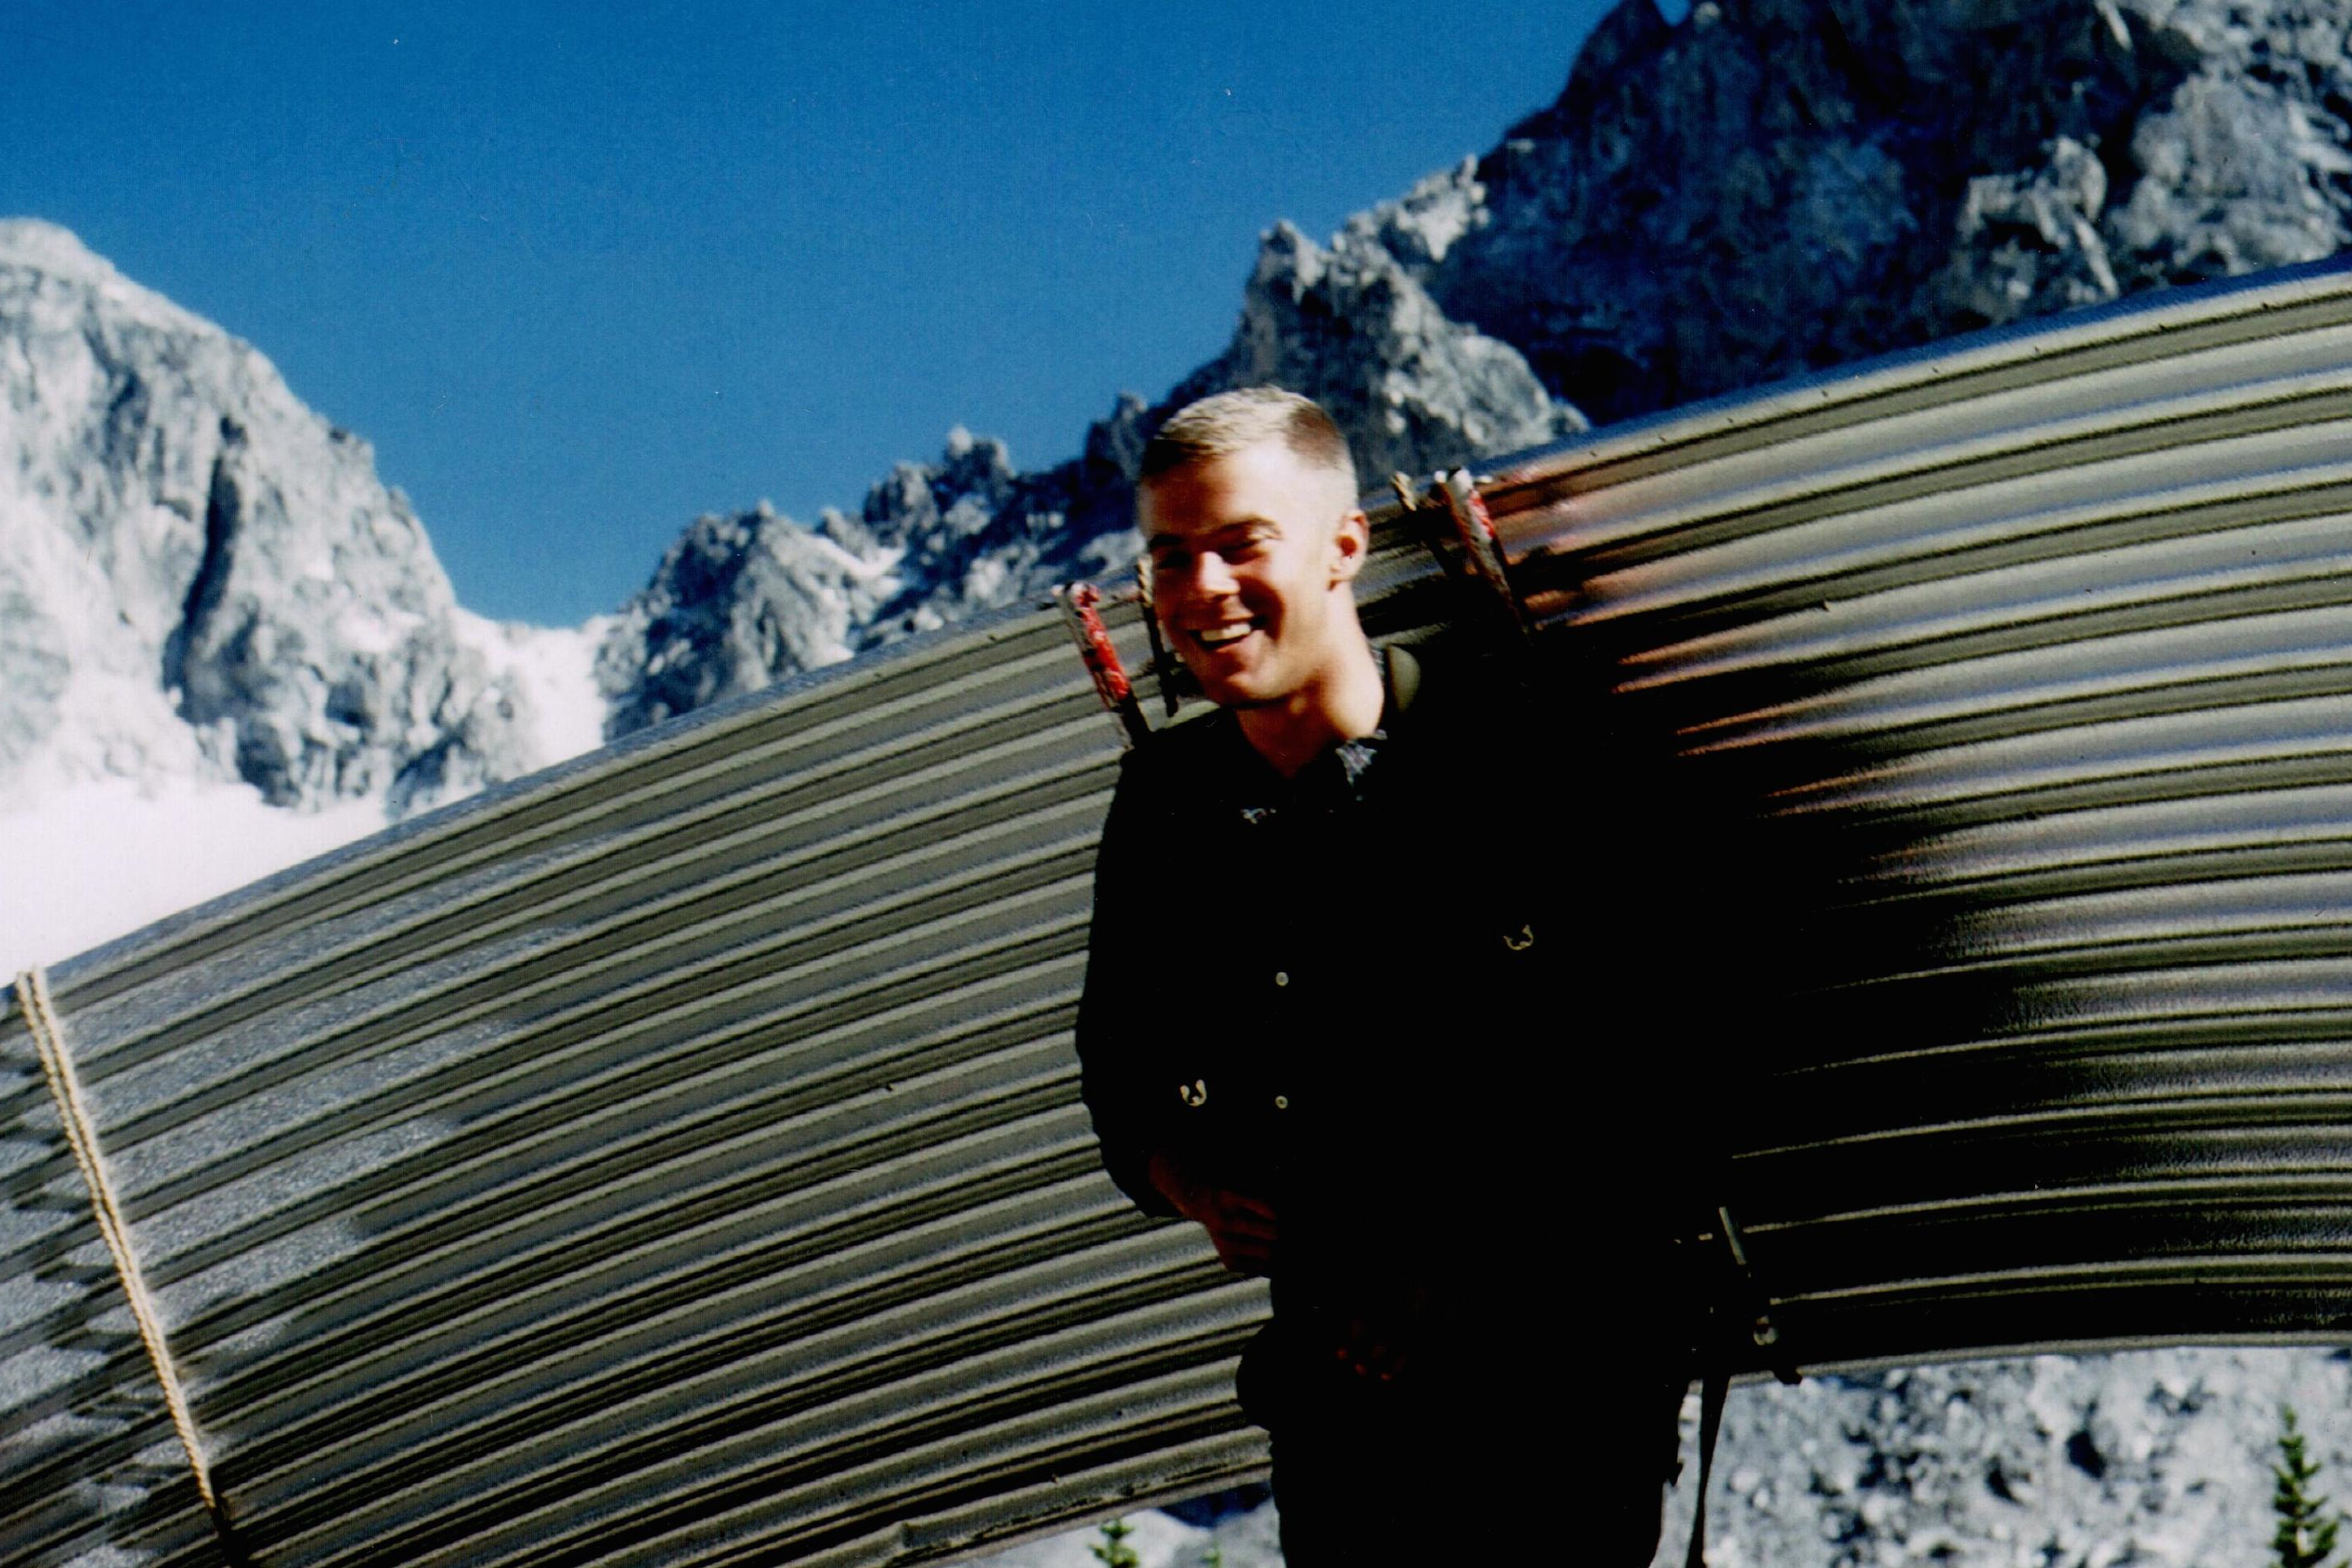 Man with a large sheet of metal strapped to his back with snowy, rocky mountains in the background